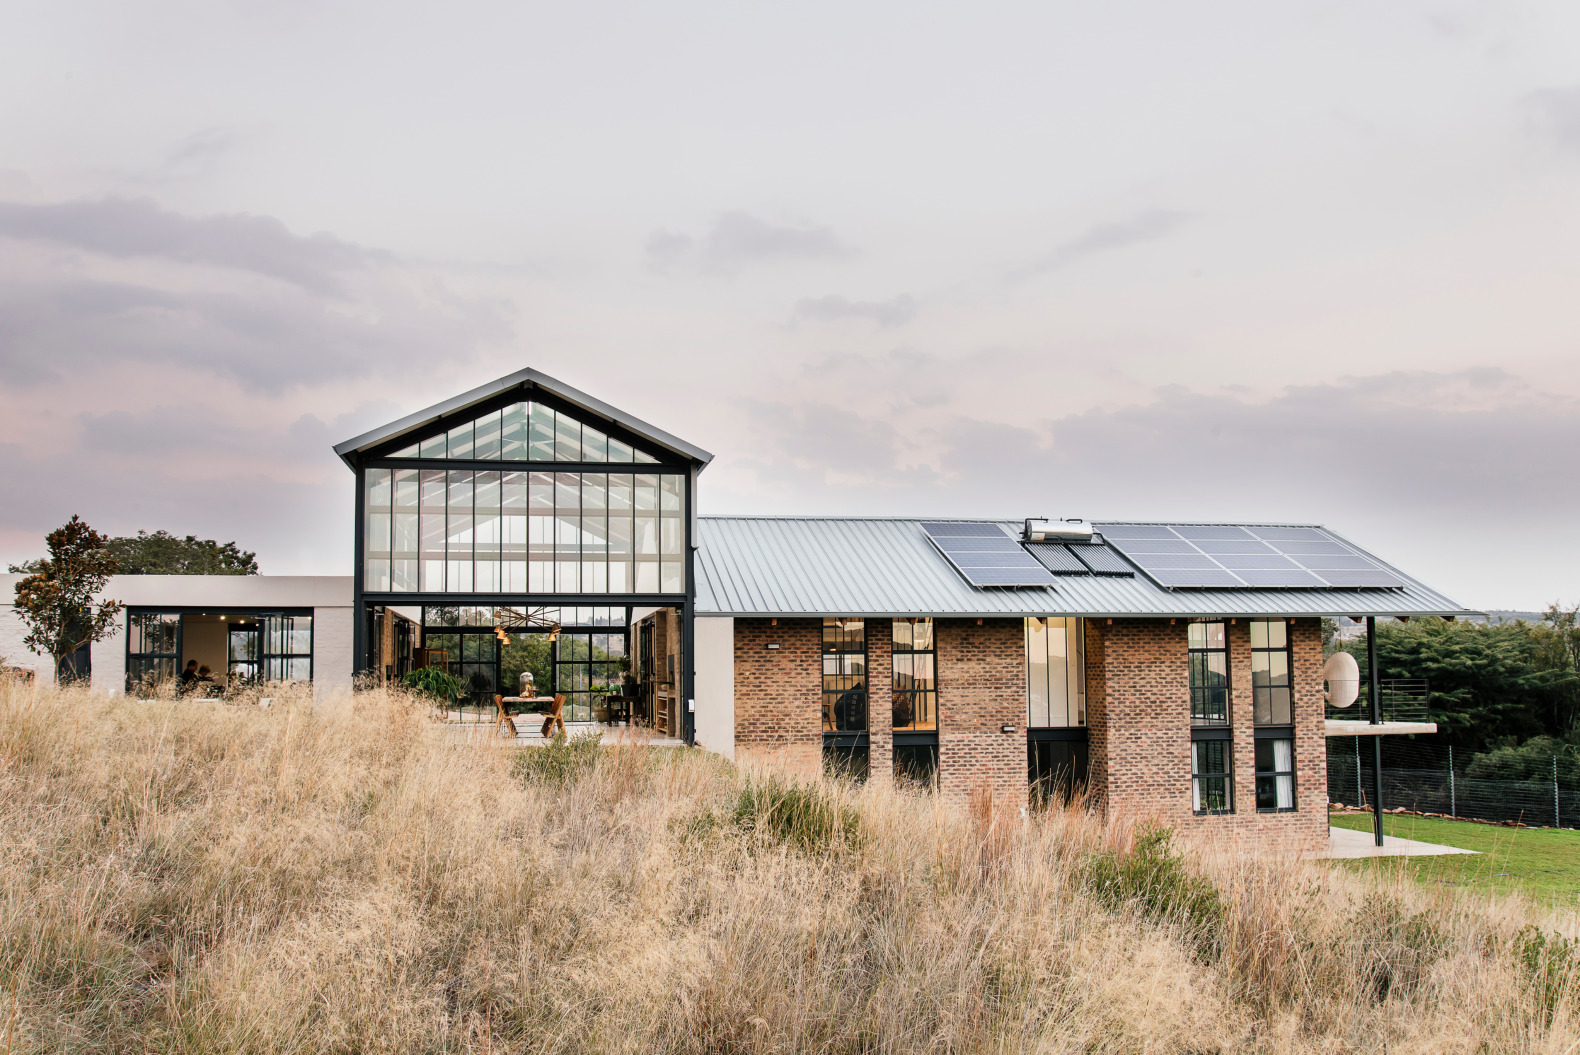 An off-grid home in South Africa features a conservatory for fully enjoying nature